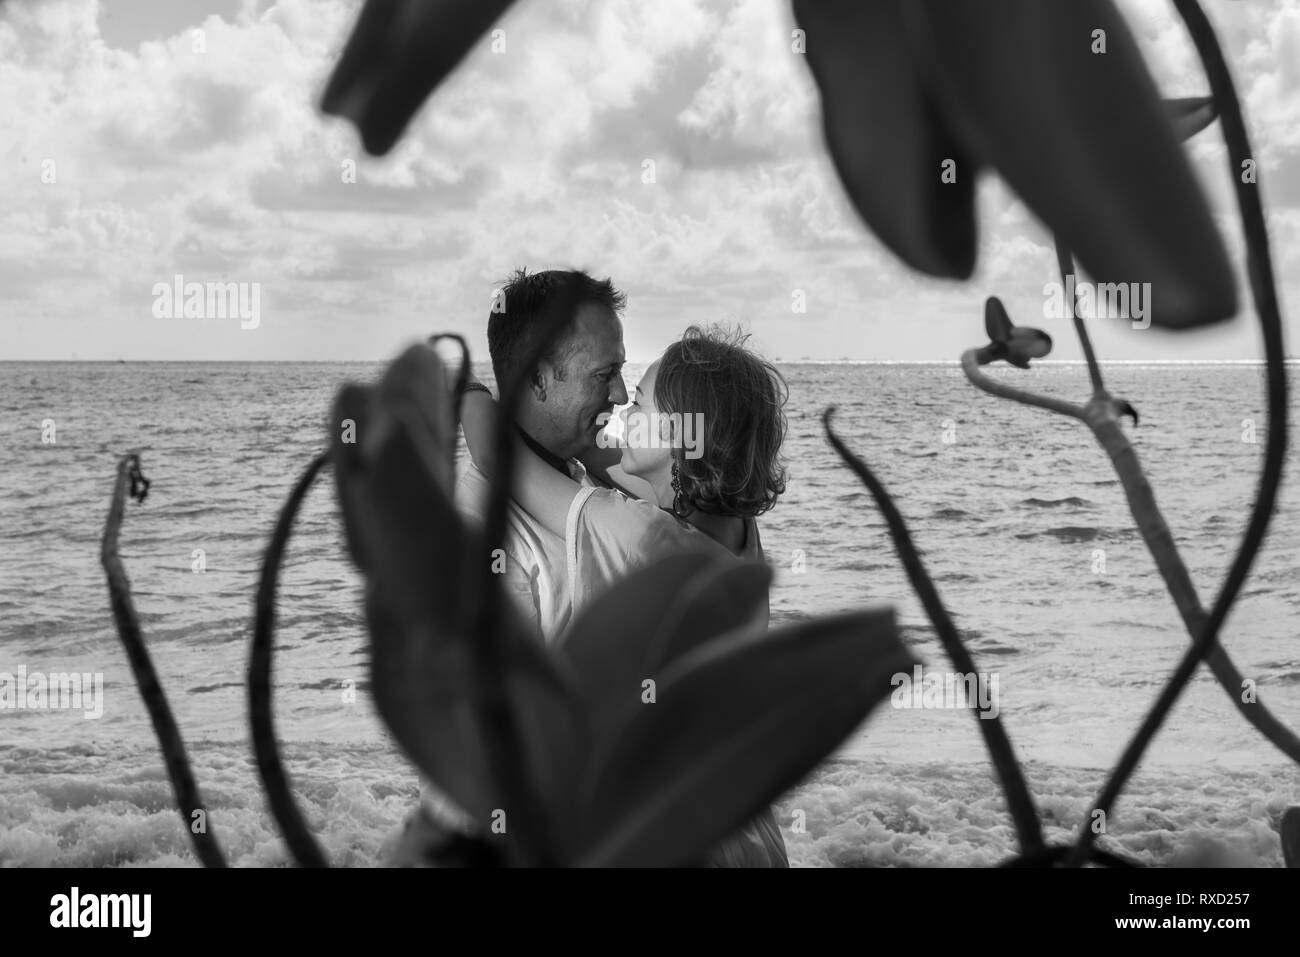 Man and women in love. They are looking each other. Branches and leafs at the first plan, and sea or river or lake at the background. Black and white  - Stock Image